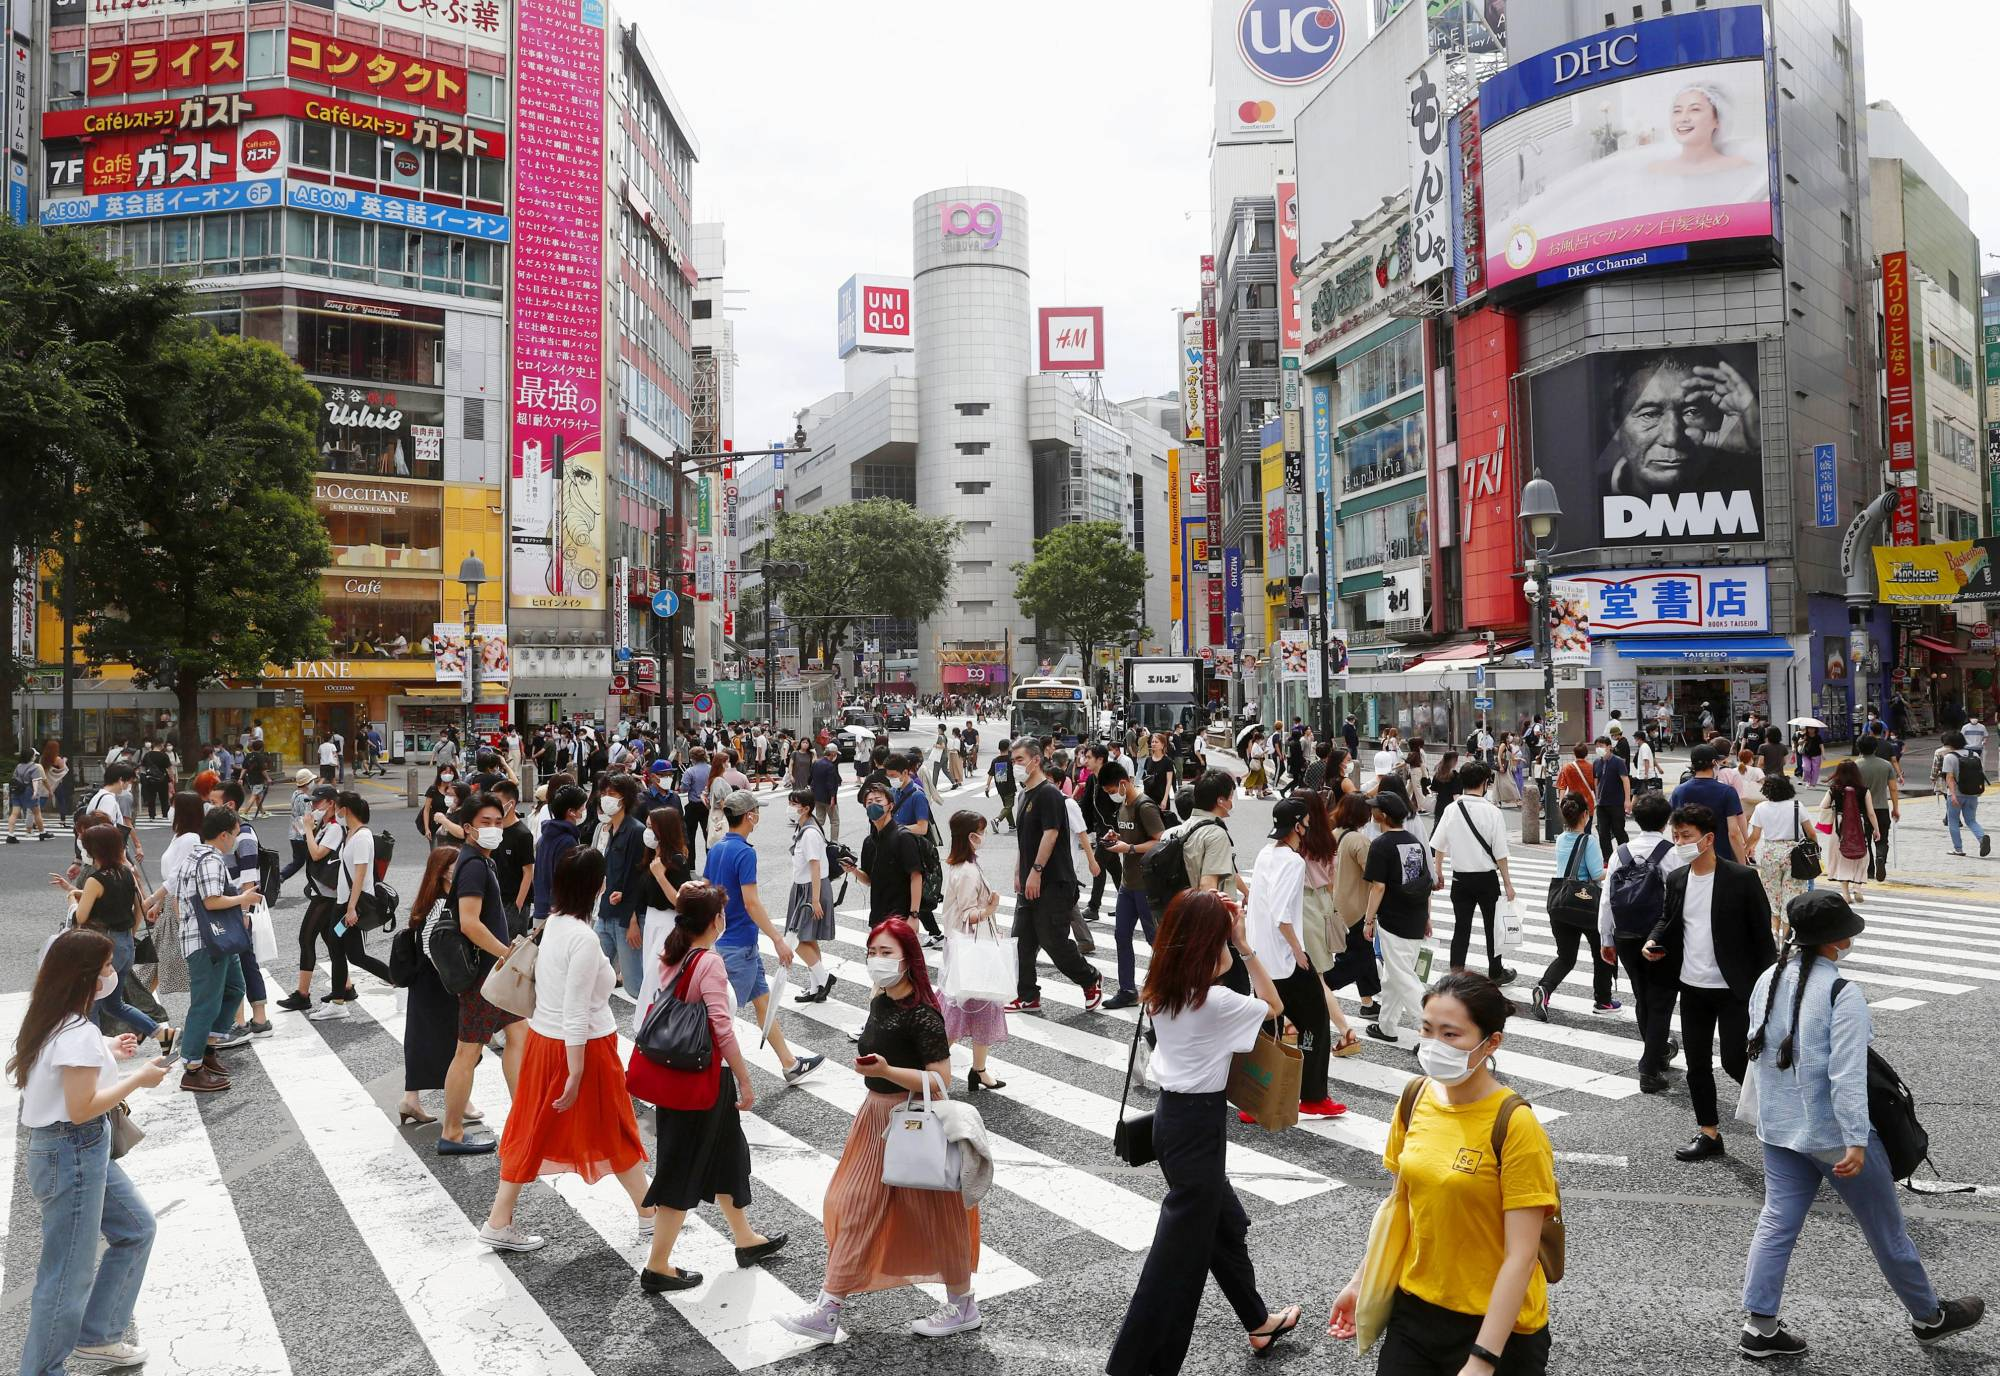 Tokyo reported 206 new coronavirus infections on Sunday, topping the 200 mark for the fourth straight day for the first time ever, NHK reported. | KYODO